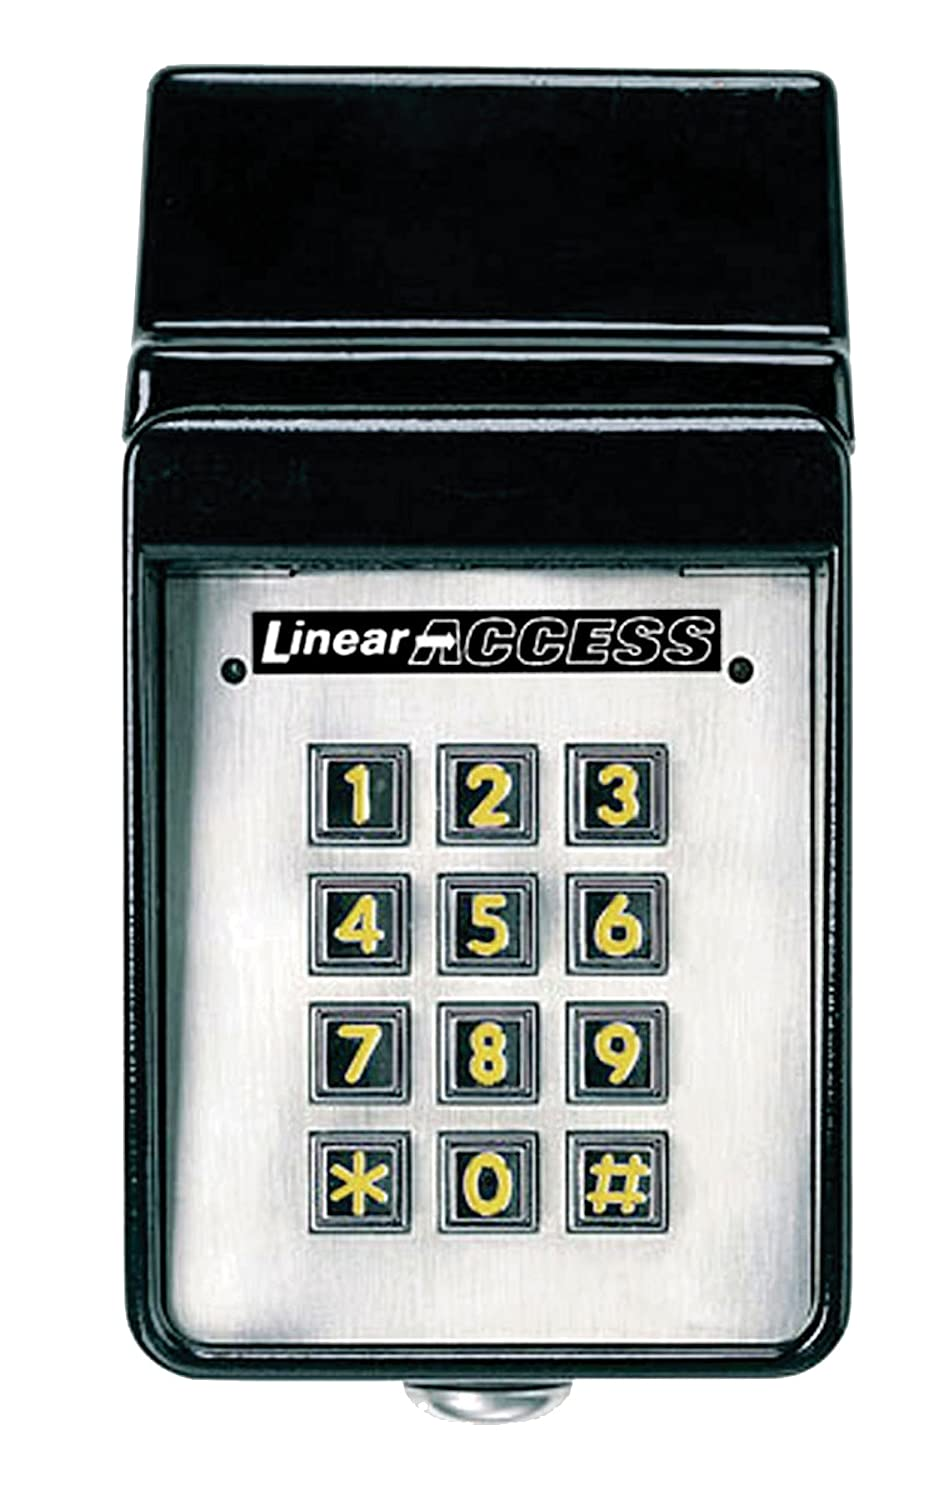 Amazon.com : Linear Model MDKP Exterior Wireles Keypad : Camera ...